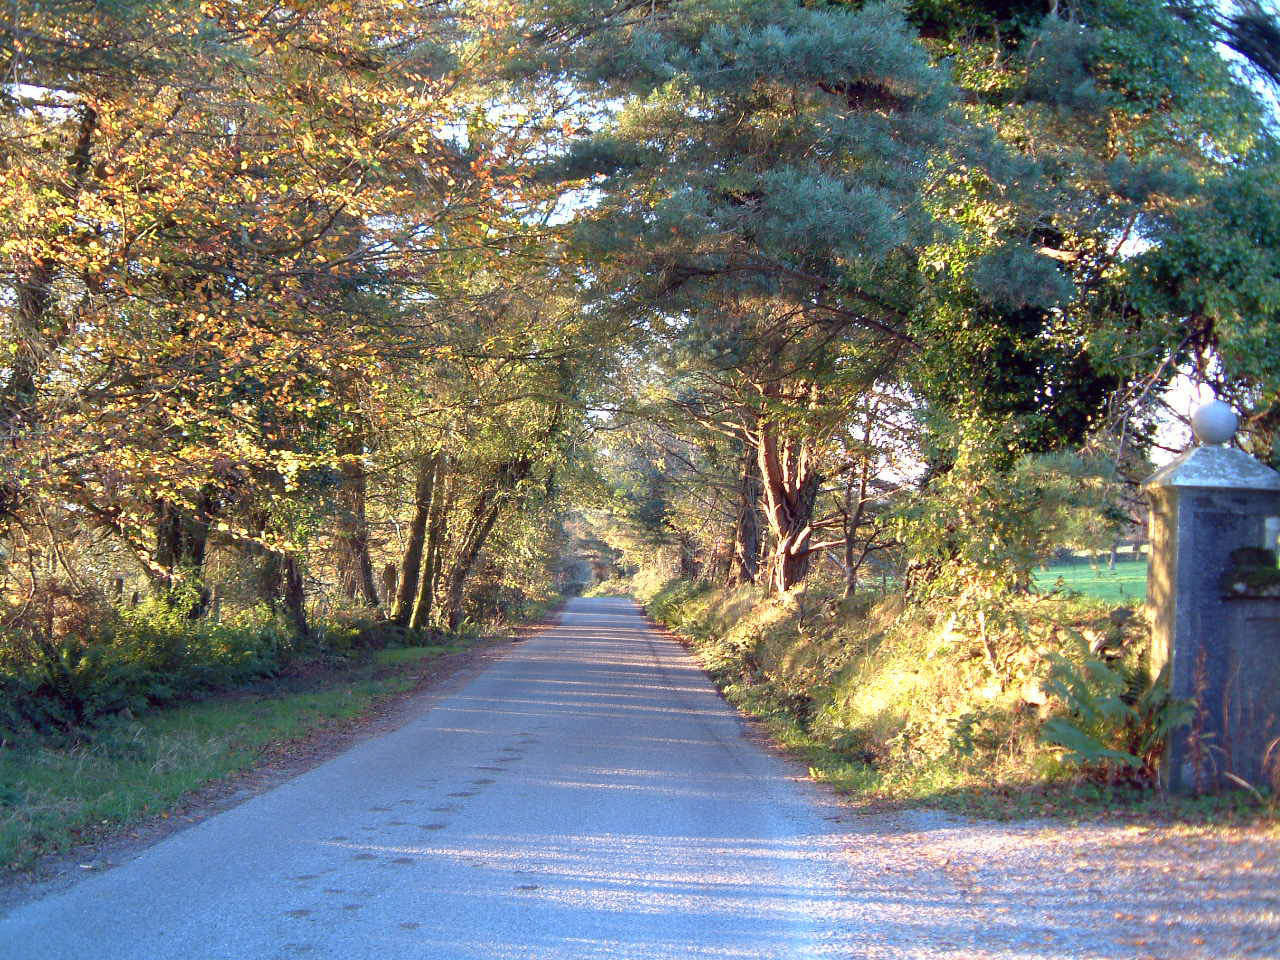 Quiet country lanes, perfect for leisurely strolls at Cullintra House, Kilkenny, Ireland